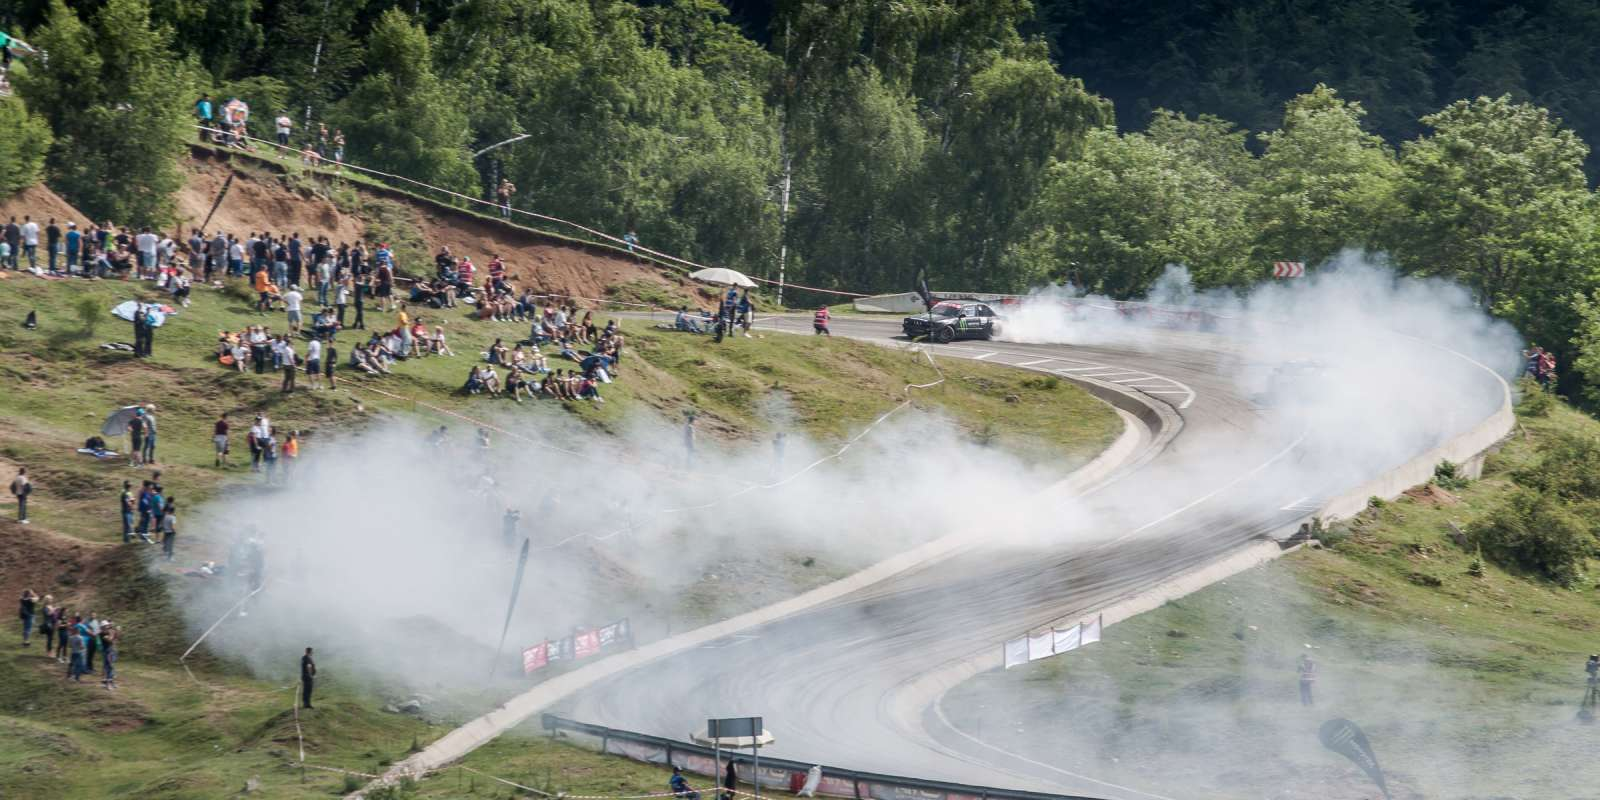 Event imagery taken at the 3rd stage of the Romanian Drift Championship. We have an ME Athelet in the competition, Calin Ciortan, branded black car - i have uploaded the pilot's contract here also. We also have a valid contract with the event - contract u